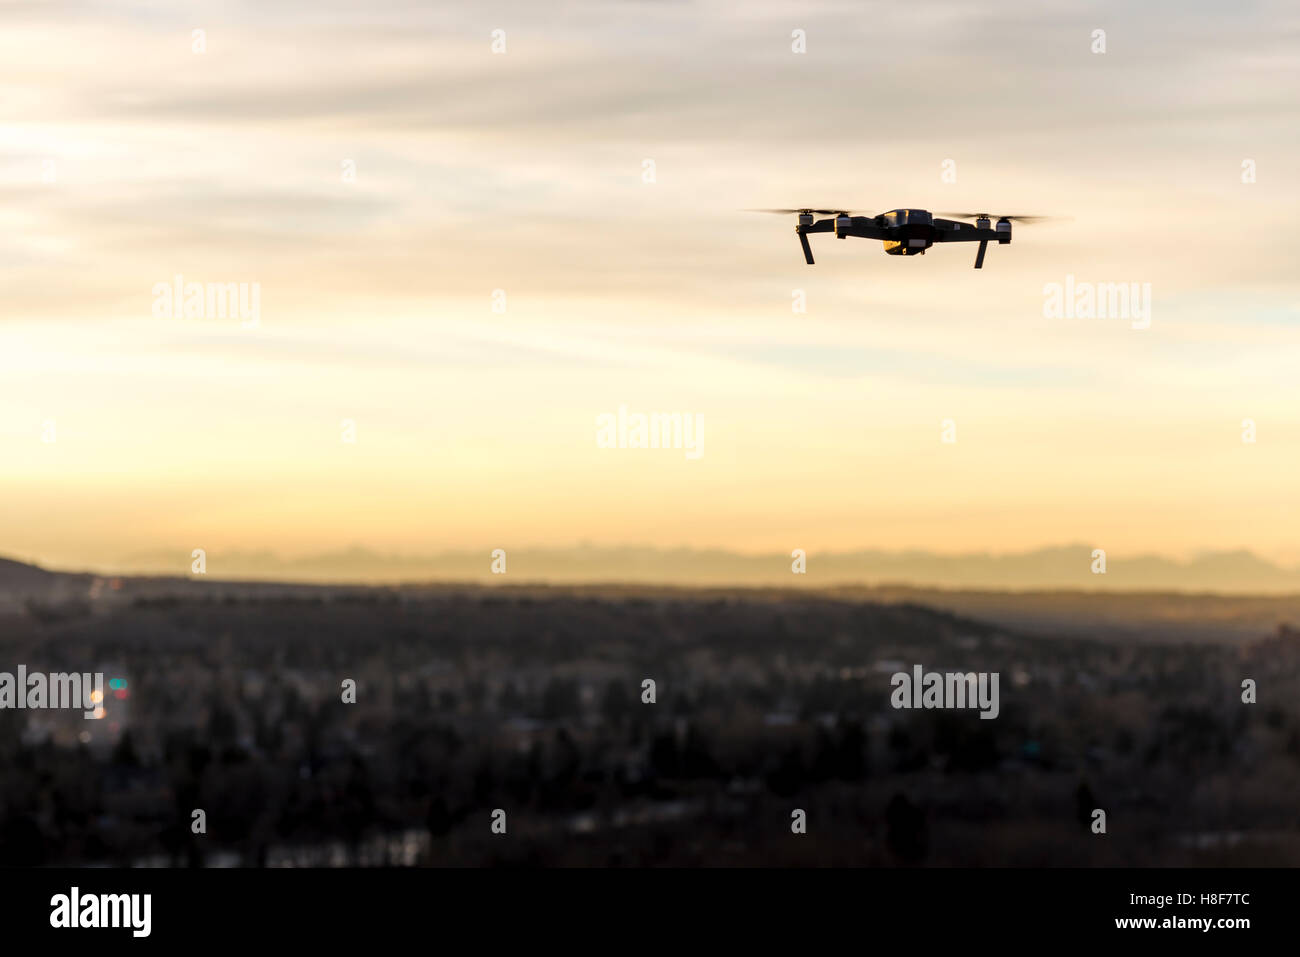 Small modern drone hovering taking picture of sunset - Stock Image